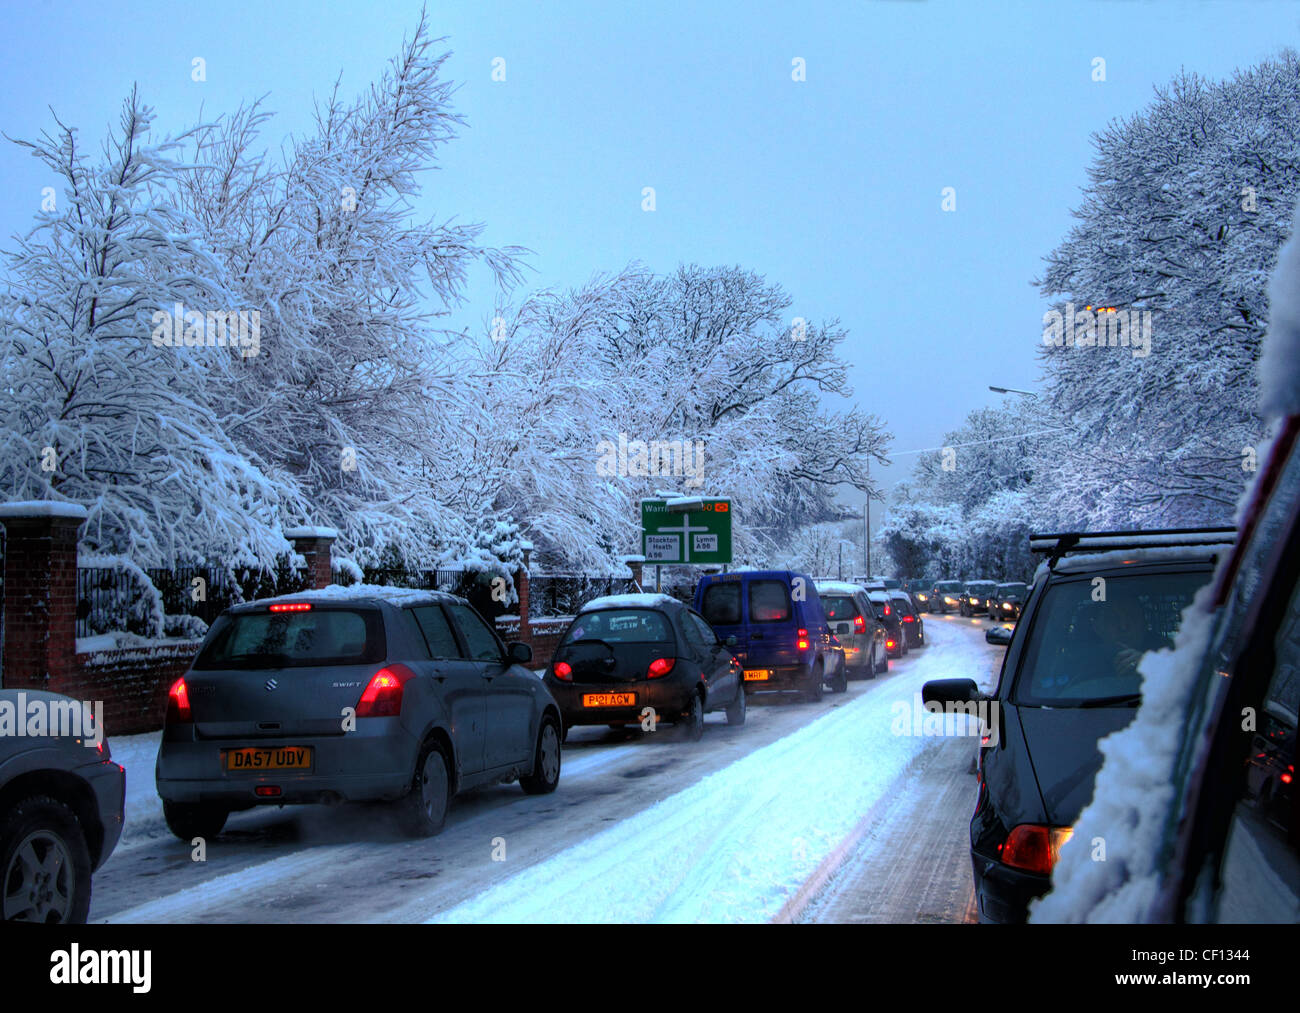 A50 traffic jam on A50 close to Grappenhall, Warrington, Cheshire, England UK - Stock Image